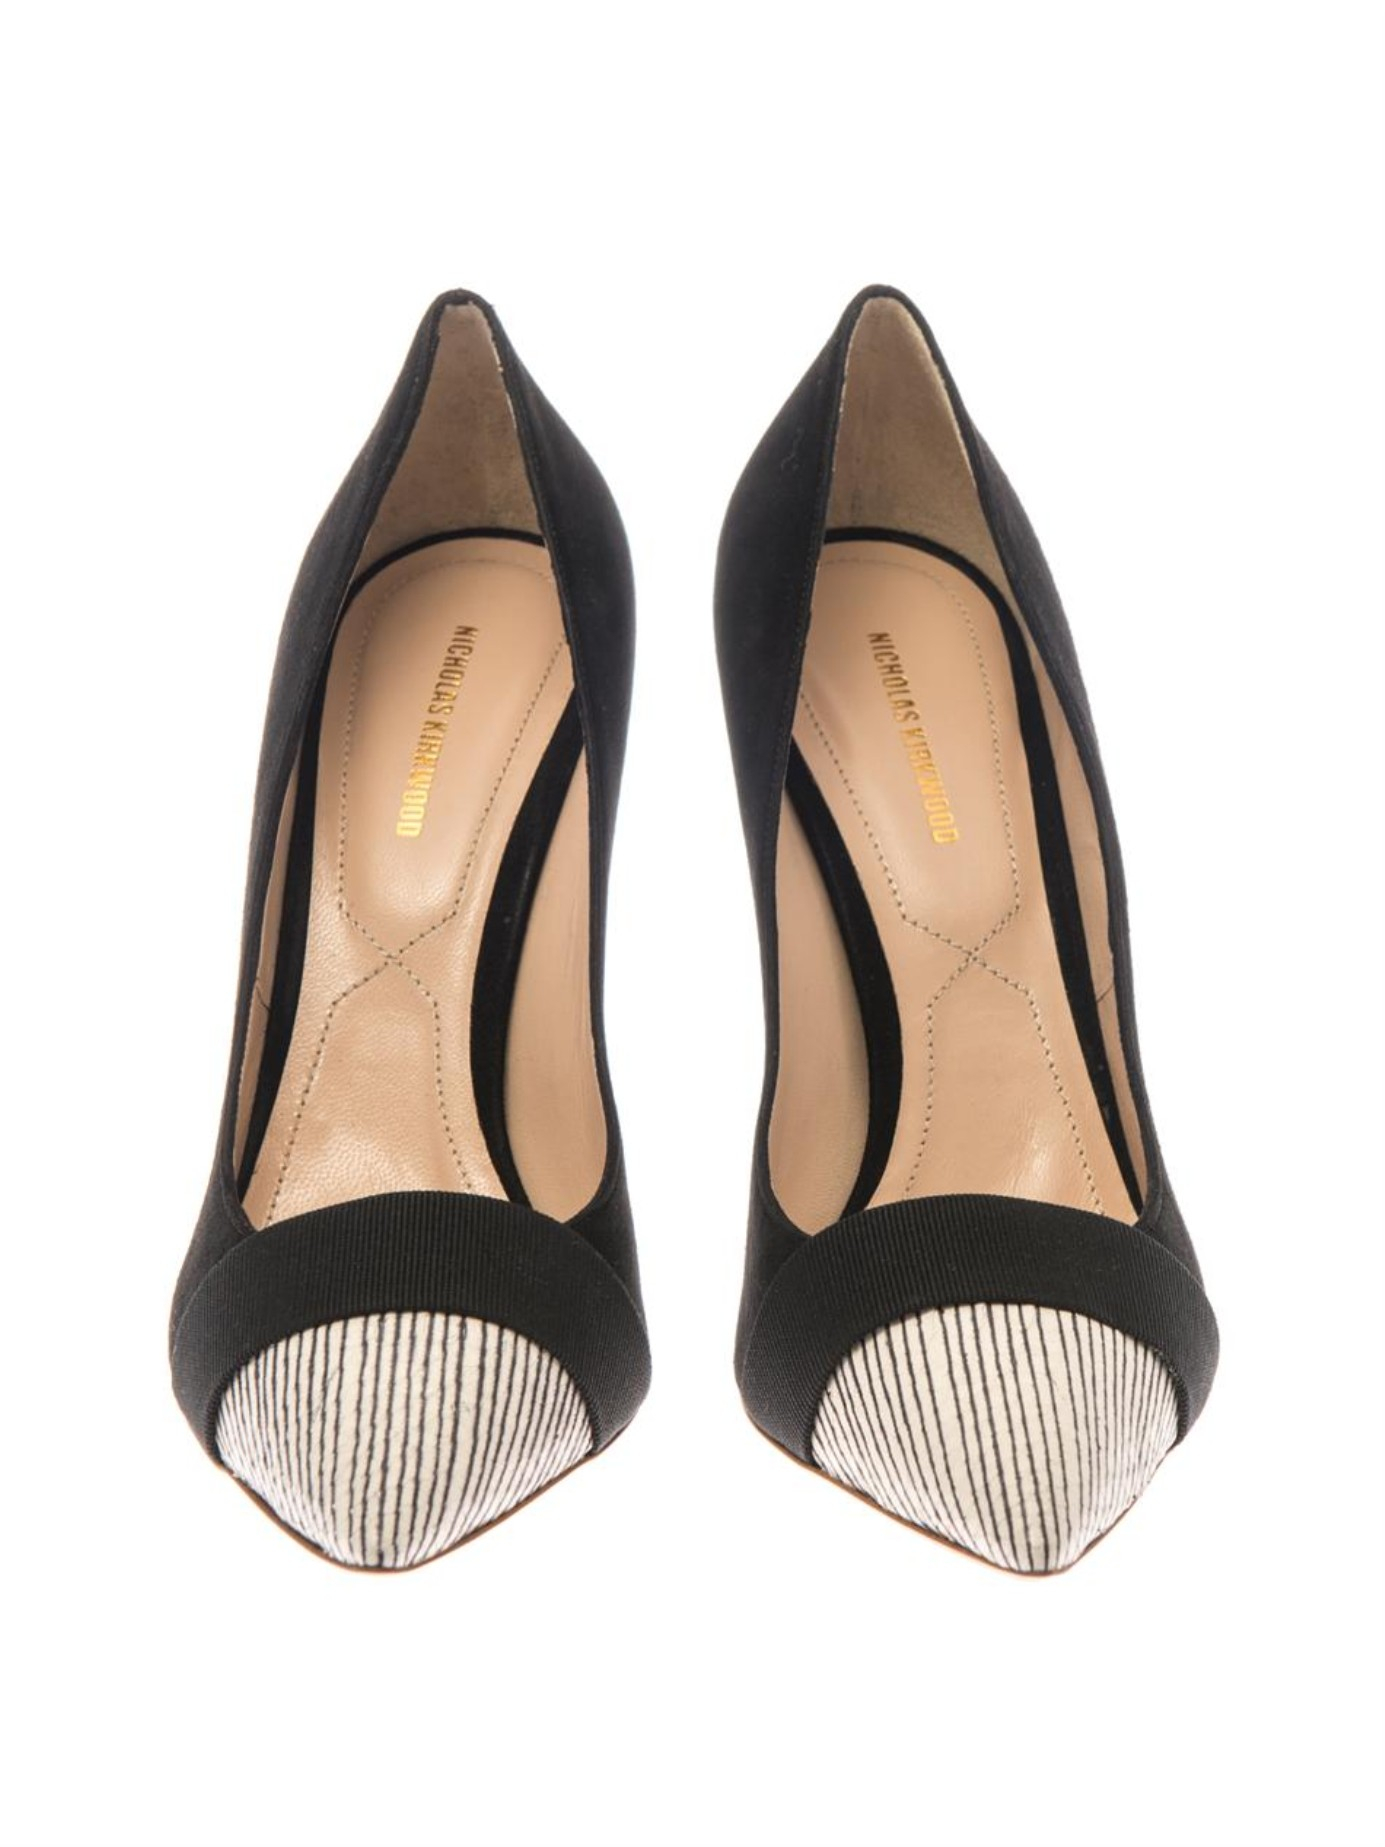 cheap sale latest collections big sale for sale Nicholas Kirkwood Pointed-Toe Snakeskin Pumps cheap cheap online discount footlocker 7iFrvbTIN